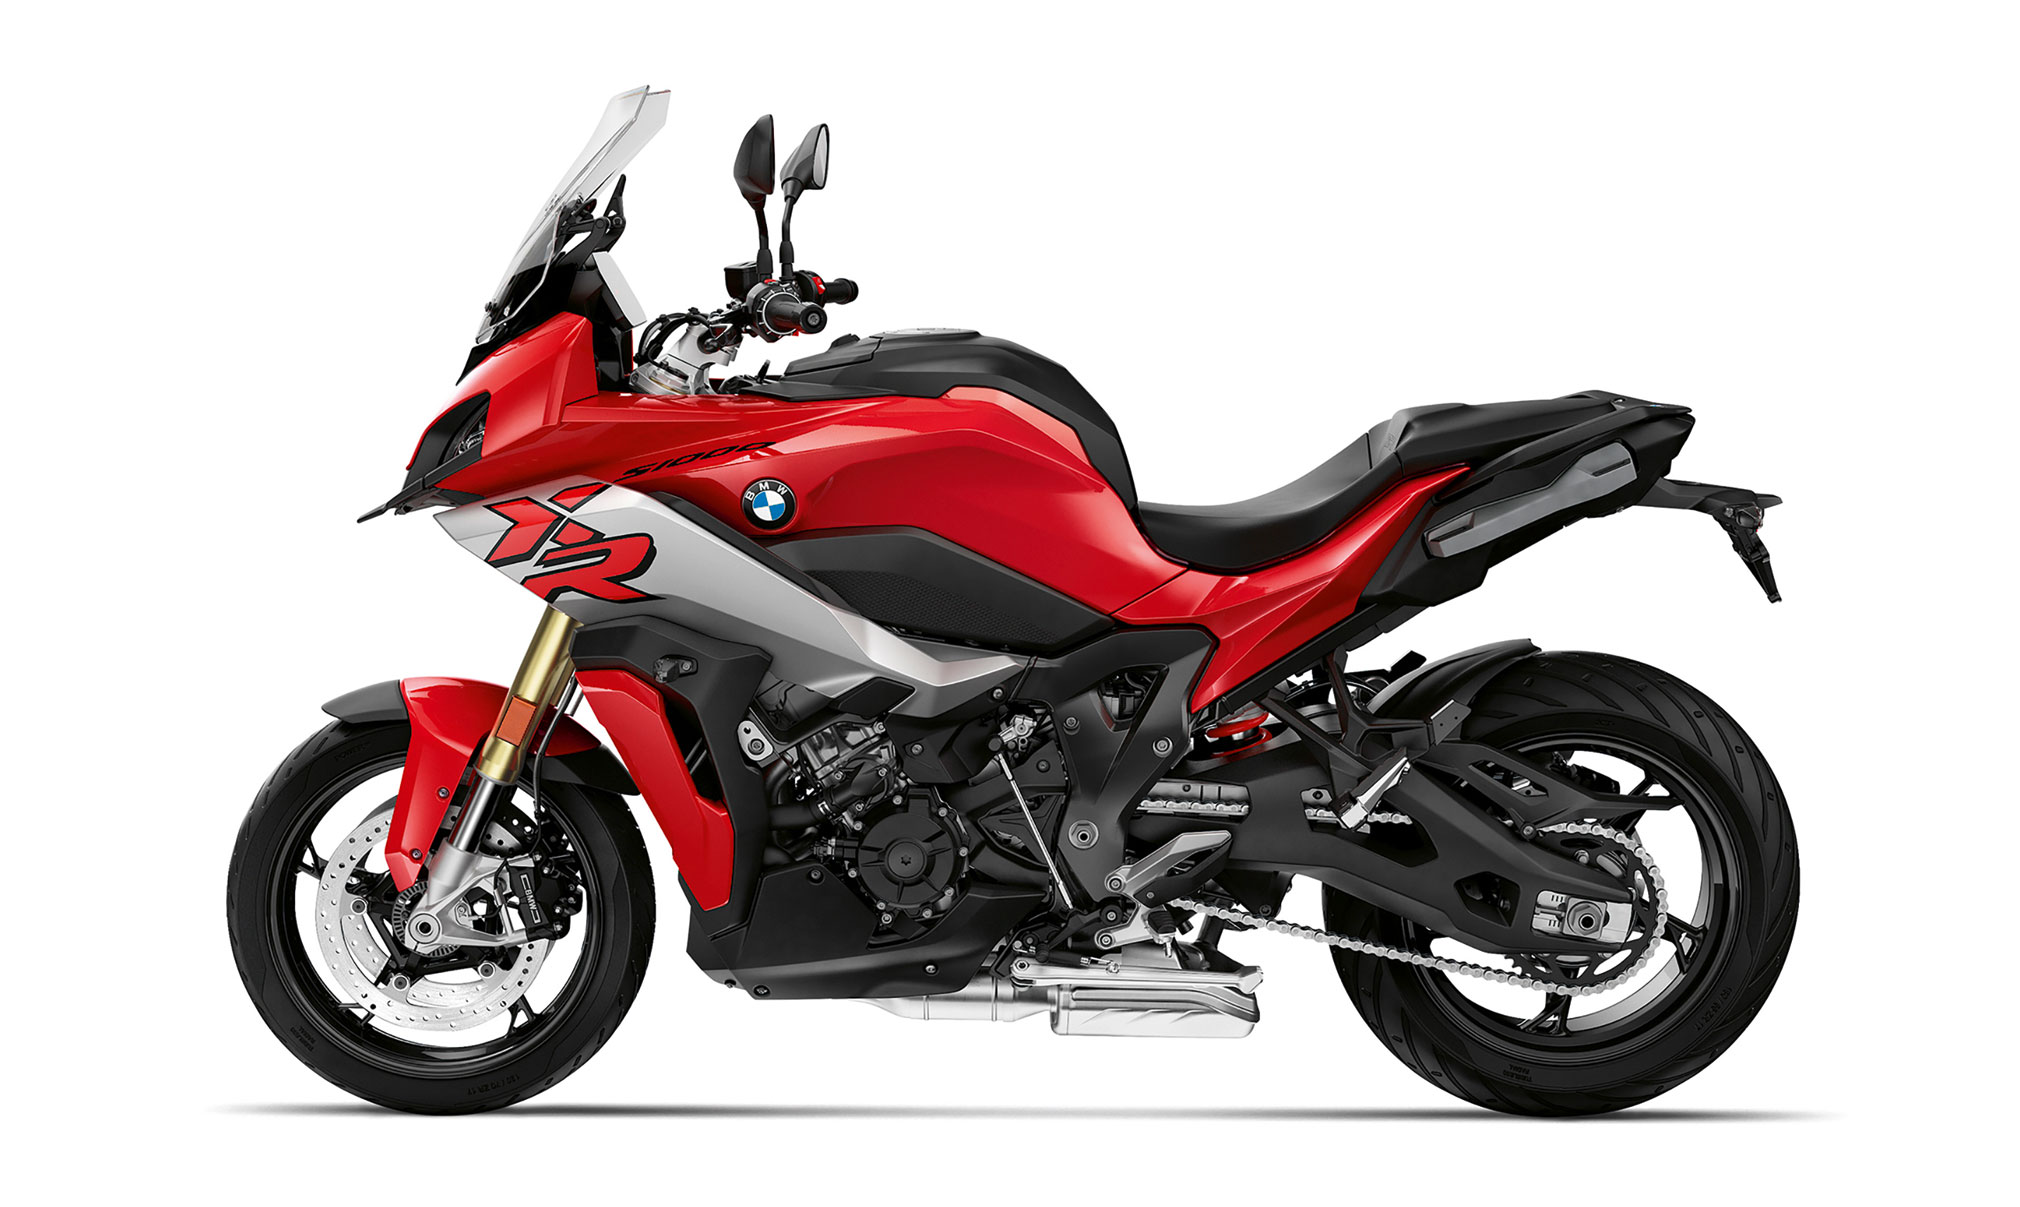 2020 bmw s1000xr guide • total motorcycle